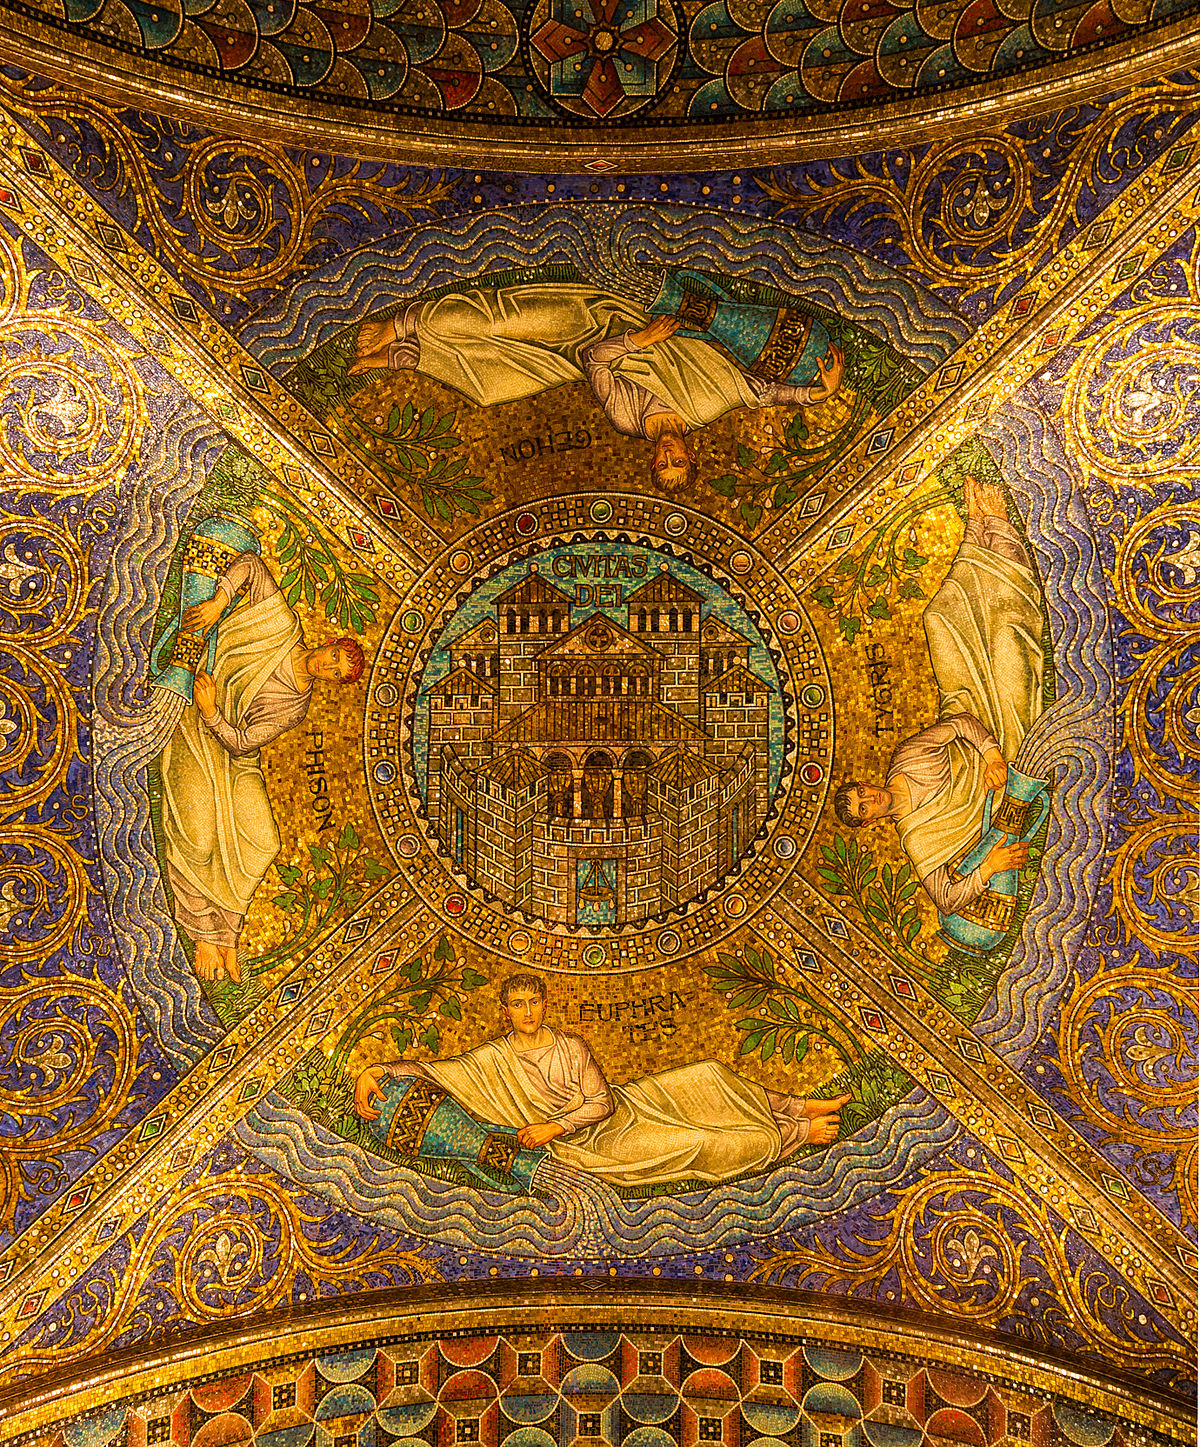 Ceiling Civitas Dei, Entrance of the Cathedral, Aachen, Germany.jpg